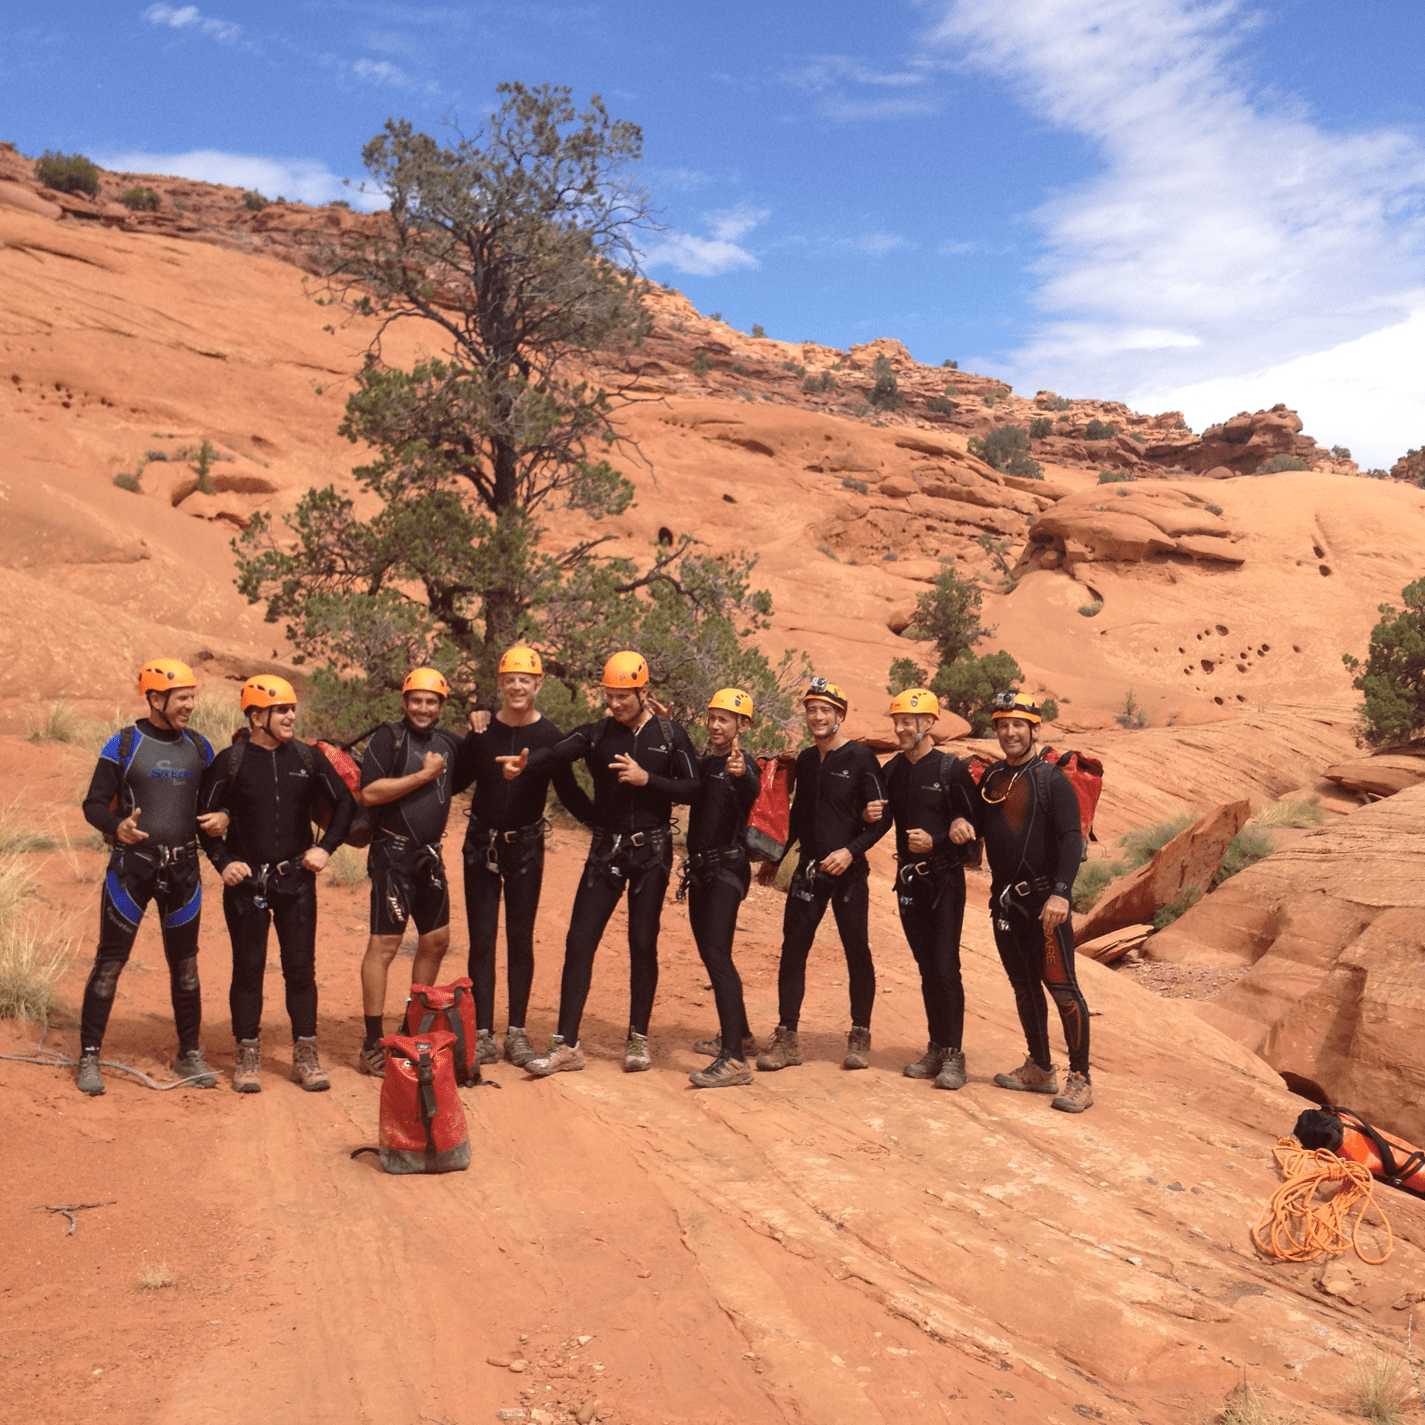 Canyoneering in the Slot Canyons of Escalante, Utah